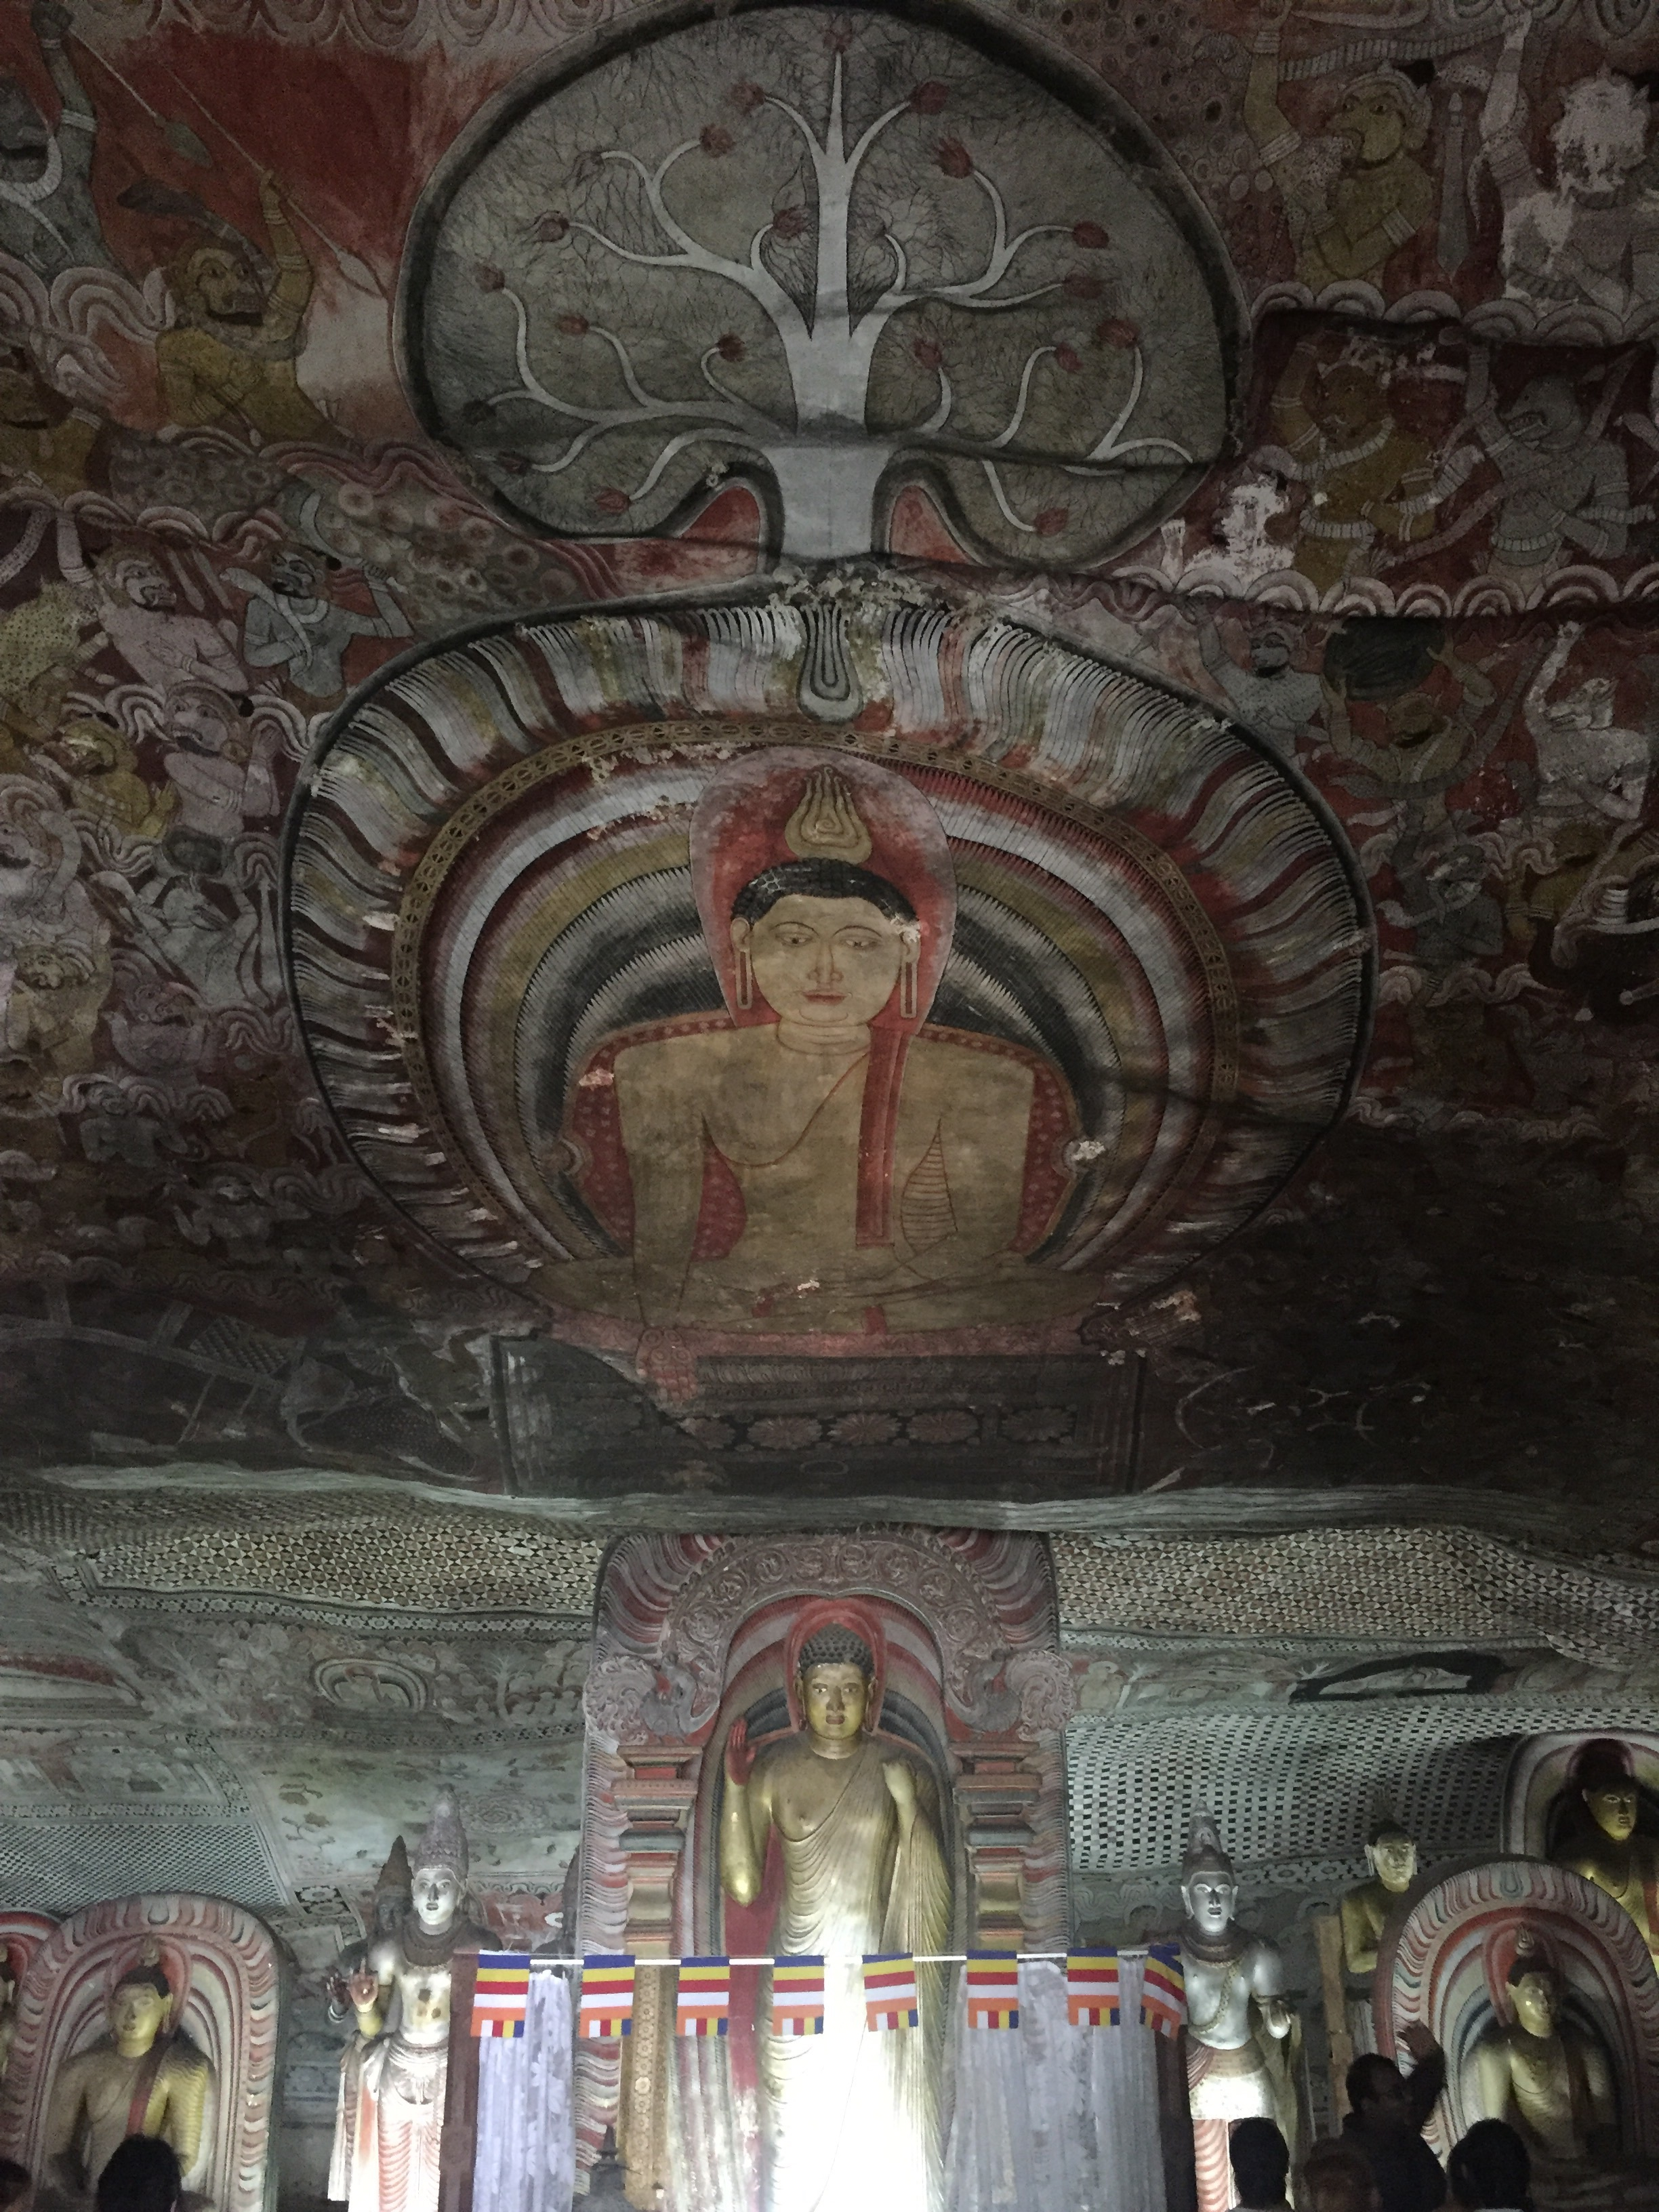 Some Buddhas and ceiling murals at the cave temples.